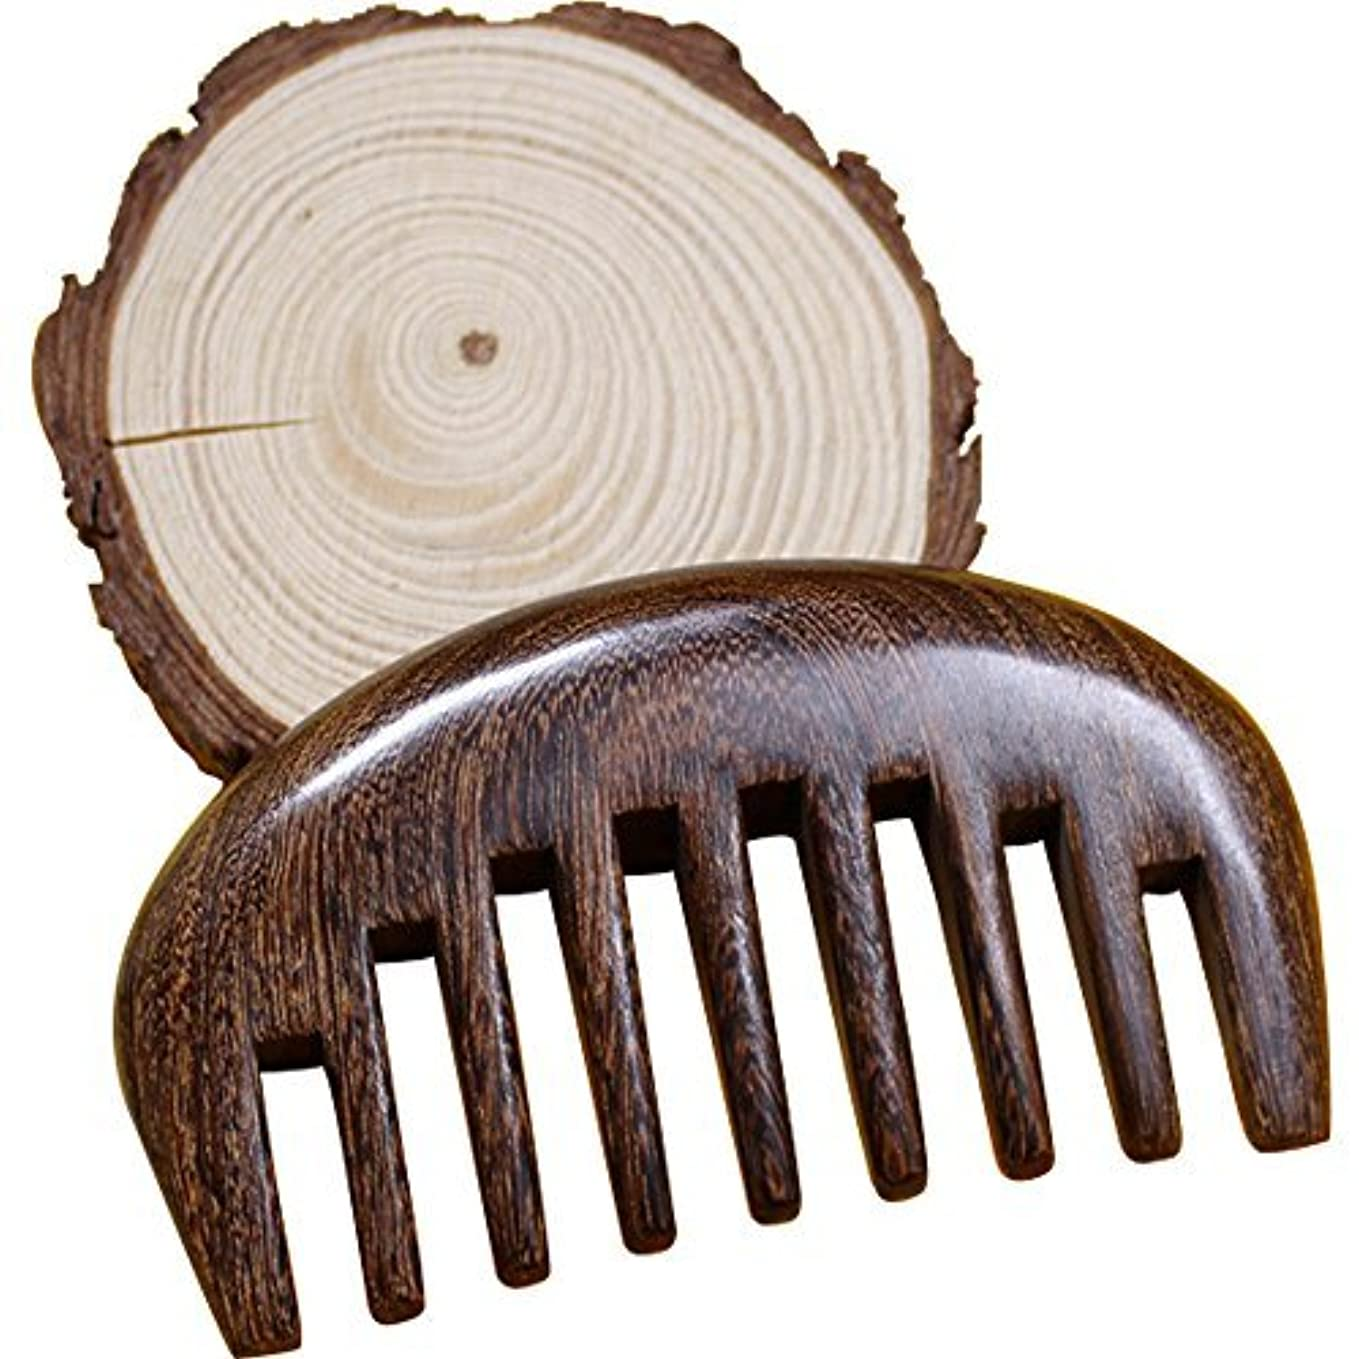 潤滑する未亡人アンケートWood comb Wooden wide tooth hair comb detangler brush -Anti Static Sandalwood Scent handmad with gift package [並行輸入品]